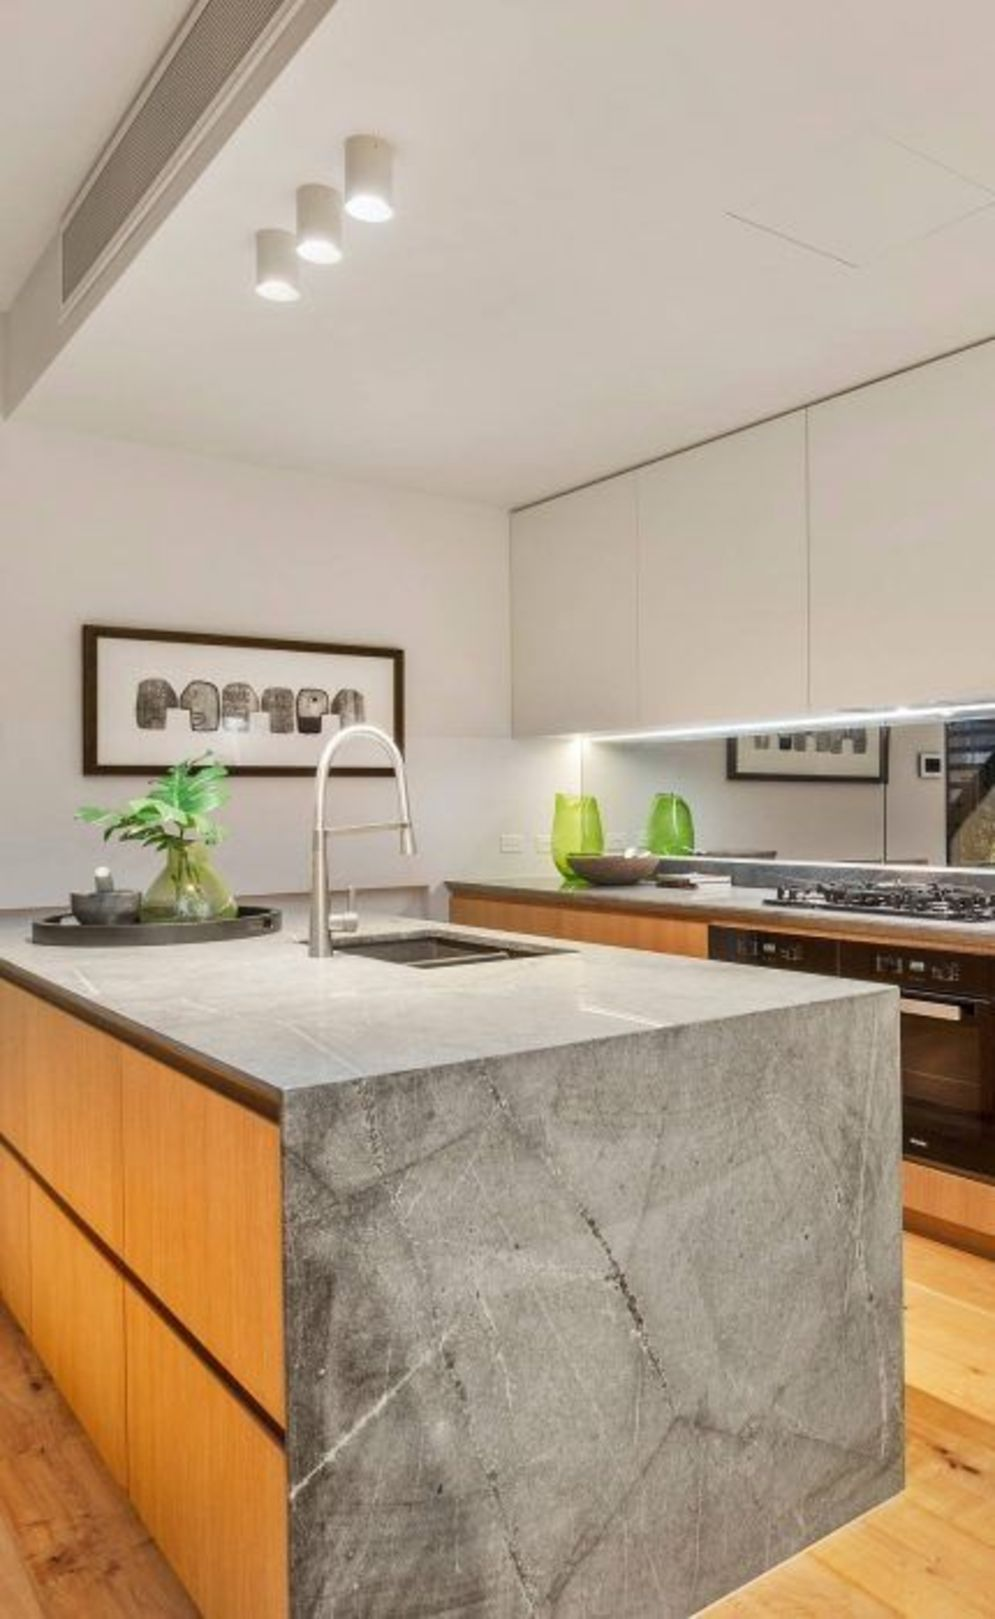 Classy kitchen styles in bold display maximizing concrete benchtop designs Image 10